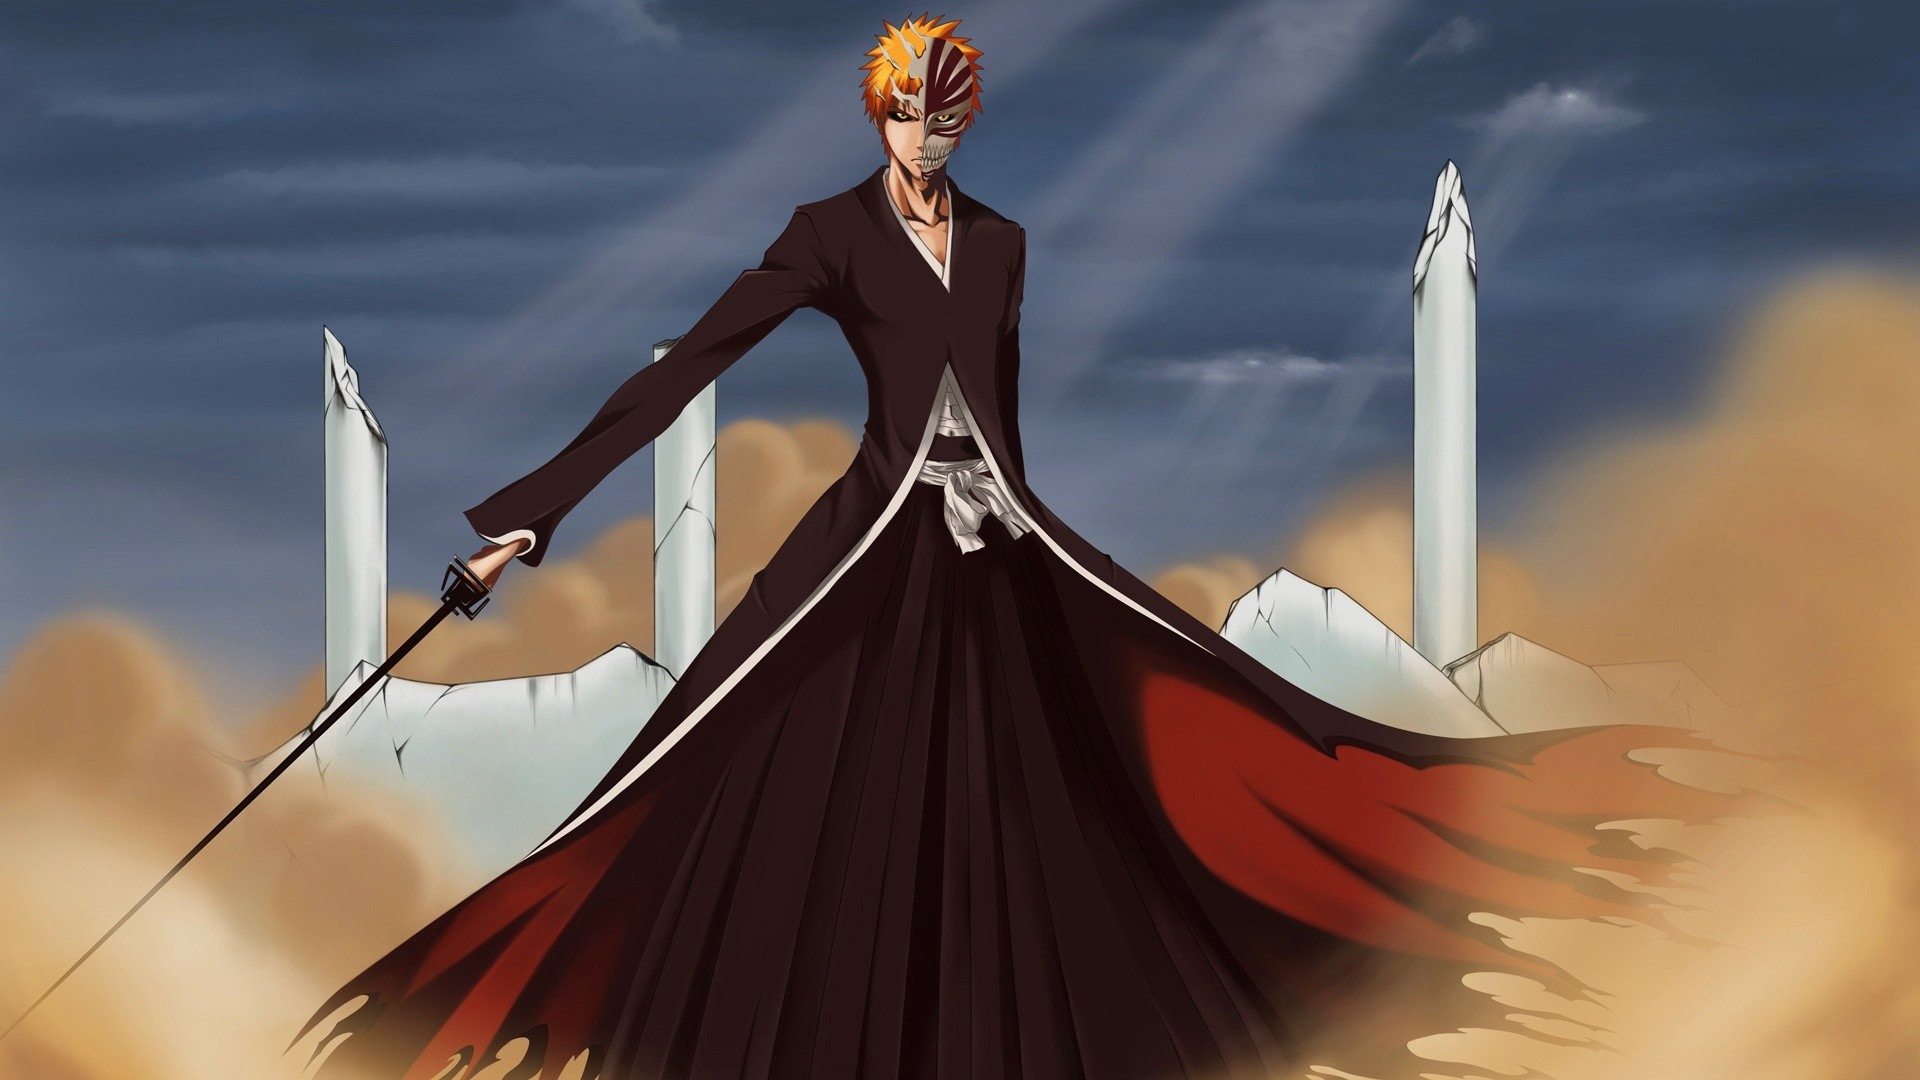 bleach wallpaper 1920 x 1080 - photo #7